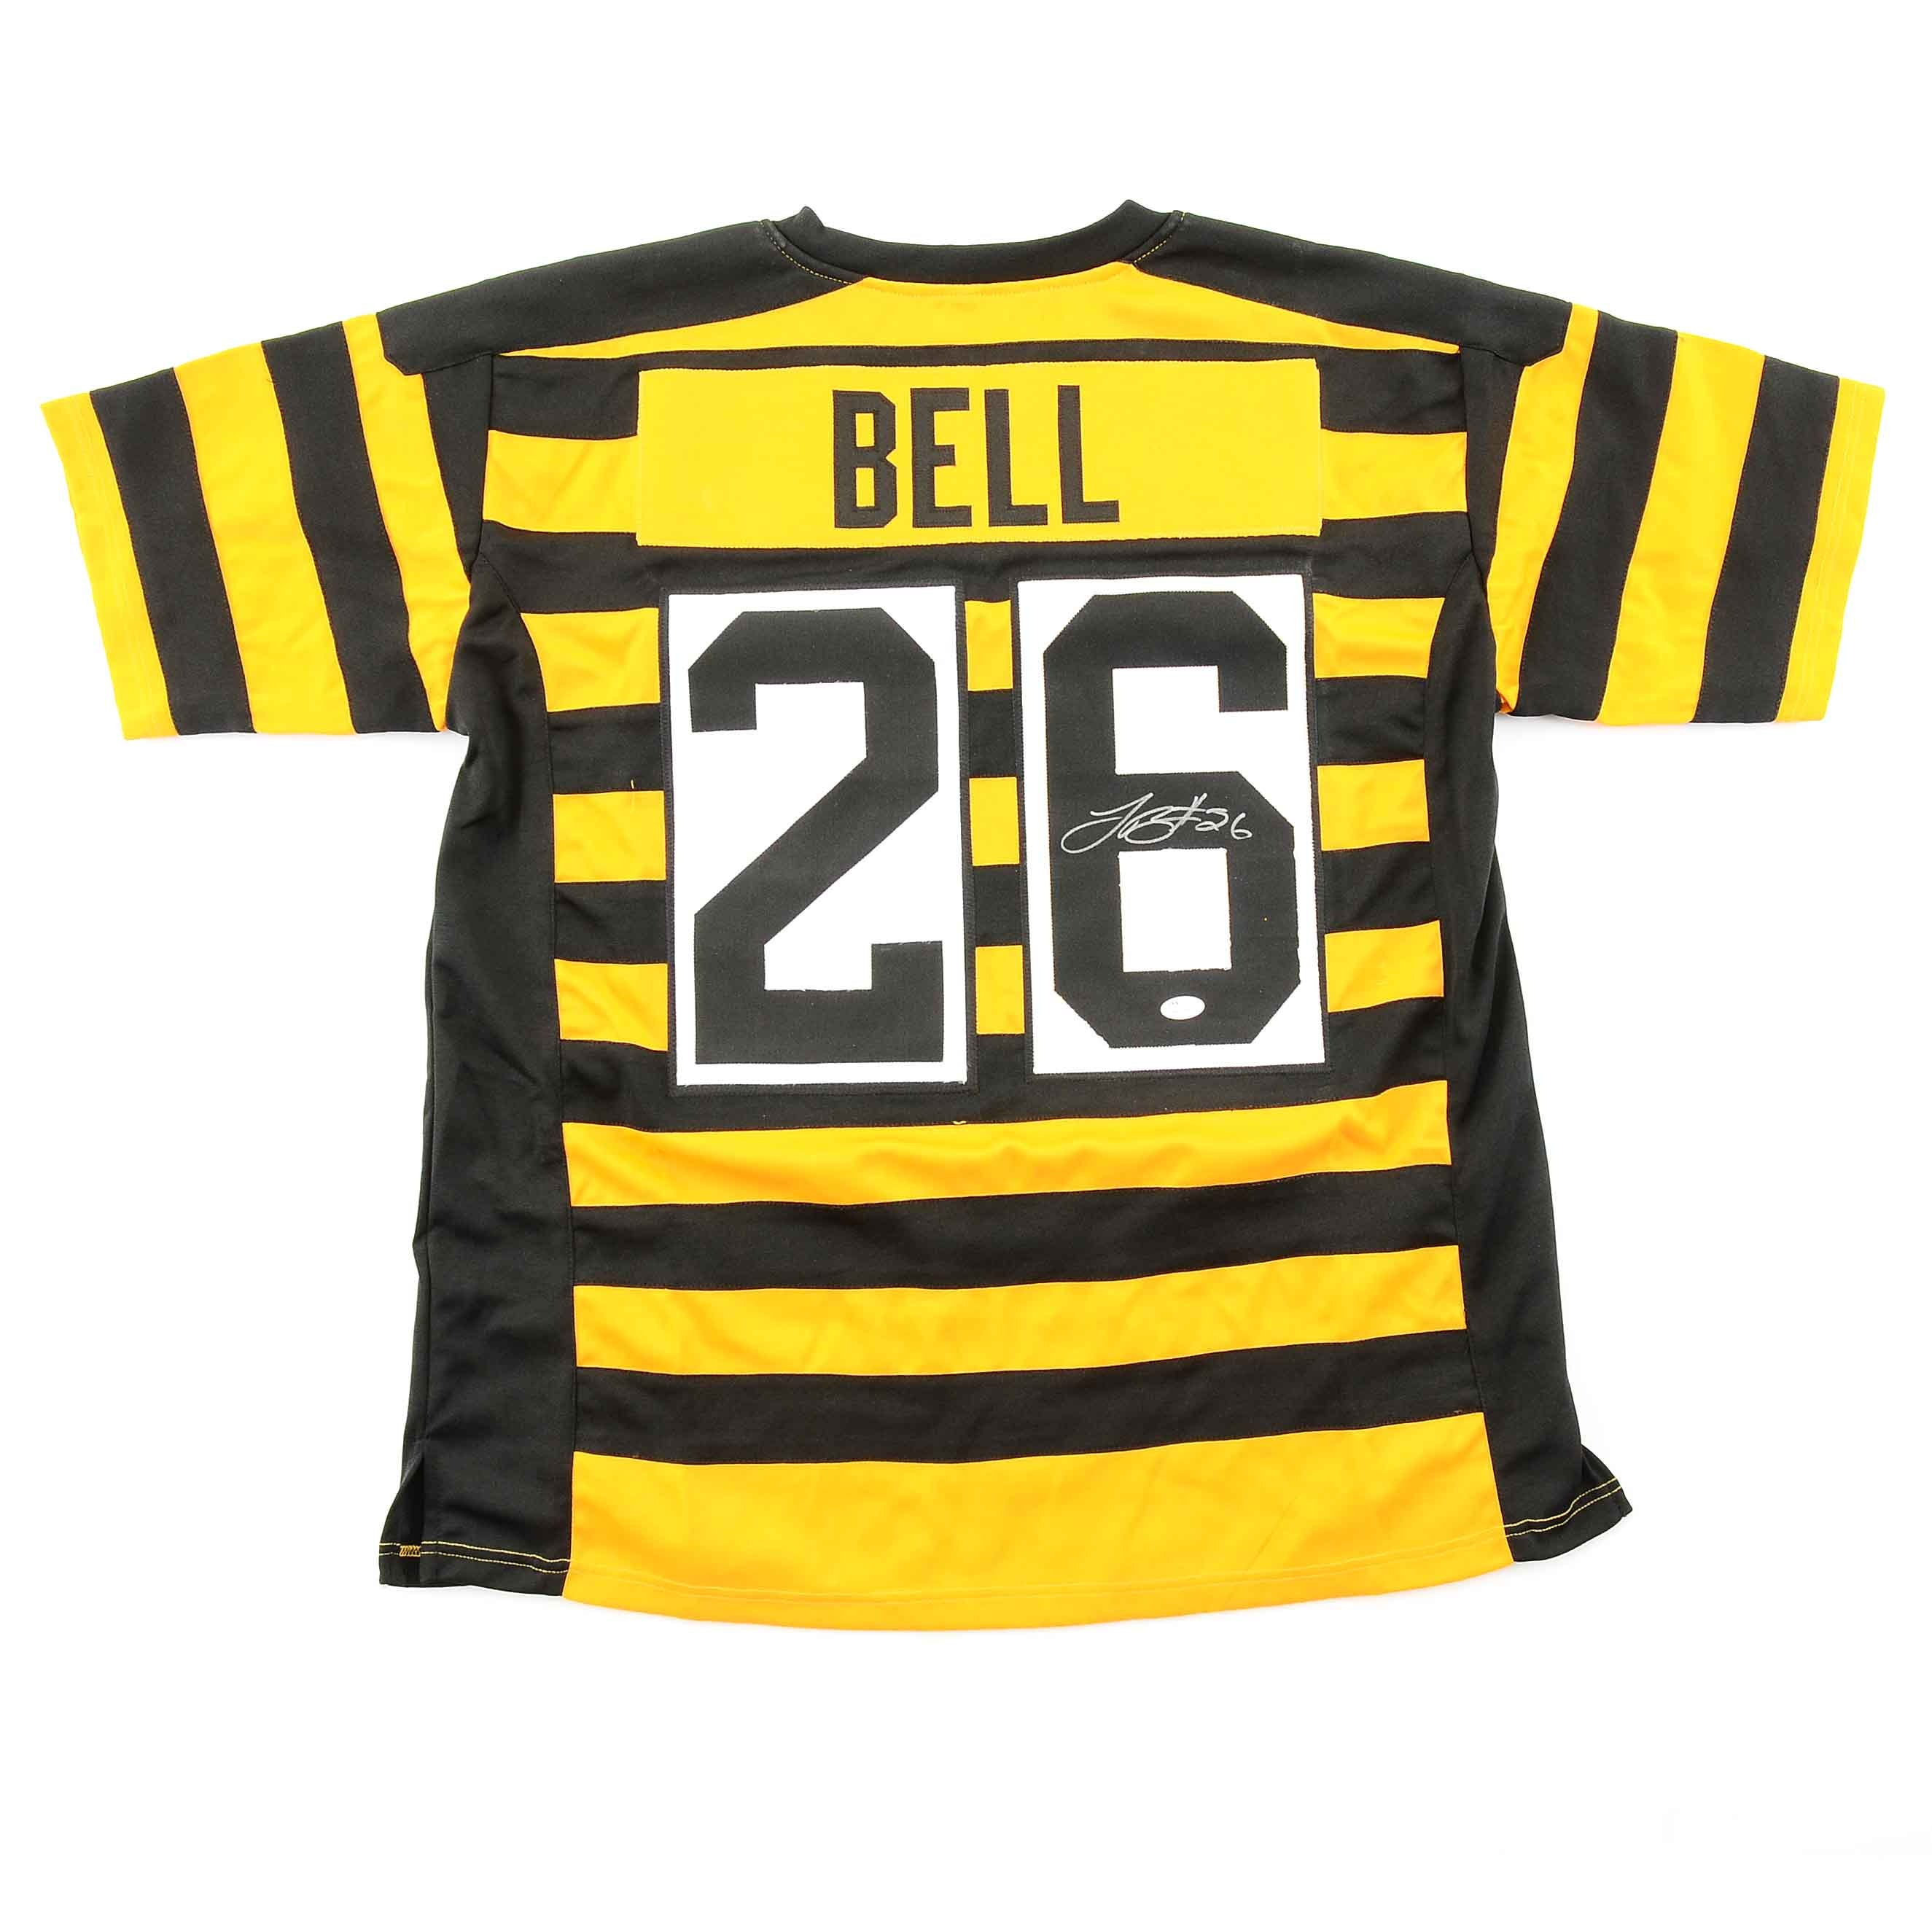 Le'veon Bell Signed Bumble Bee Steelers Jersey  COA